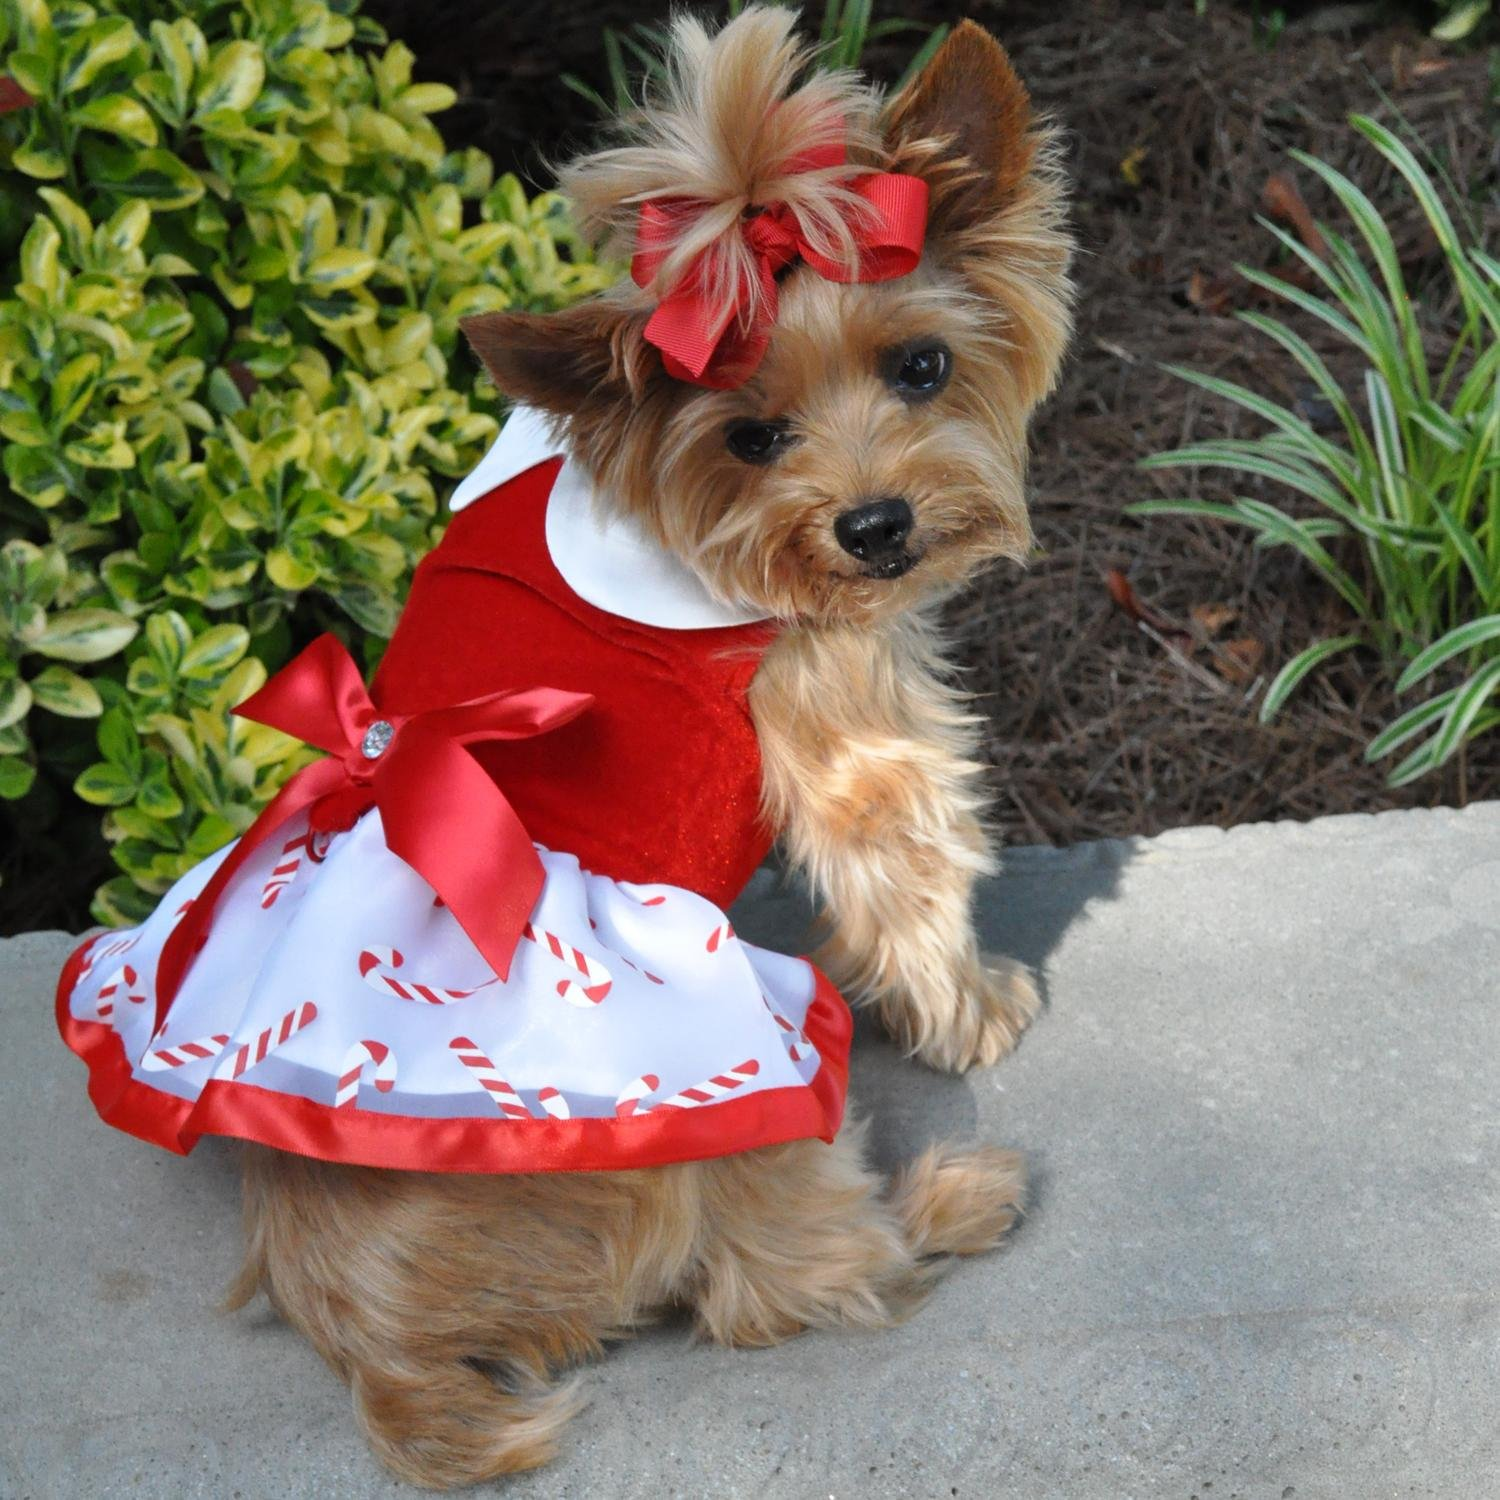 Doggie Design Holiday Dog Harness Dress Skirt with Matching Leash (Candy Canes, S) by DOGGIE DESIGN